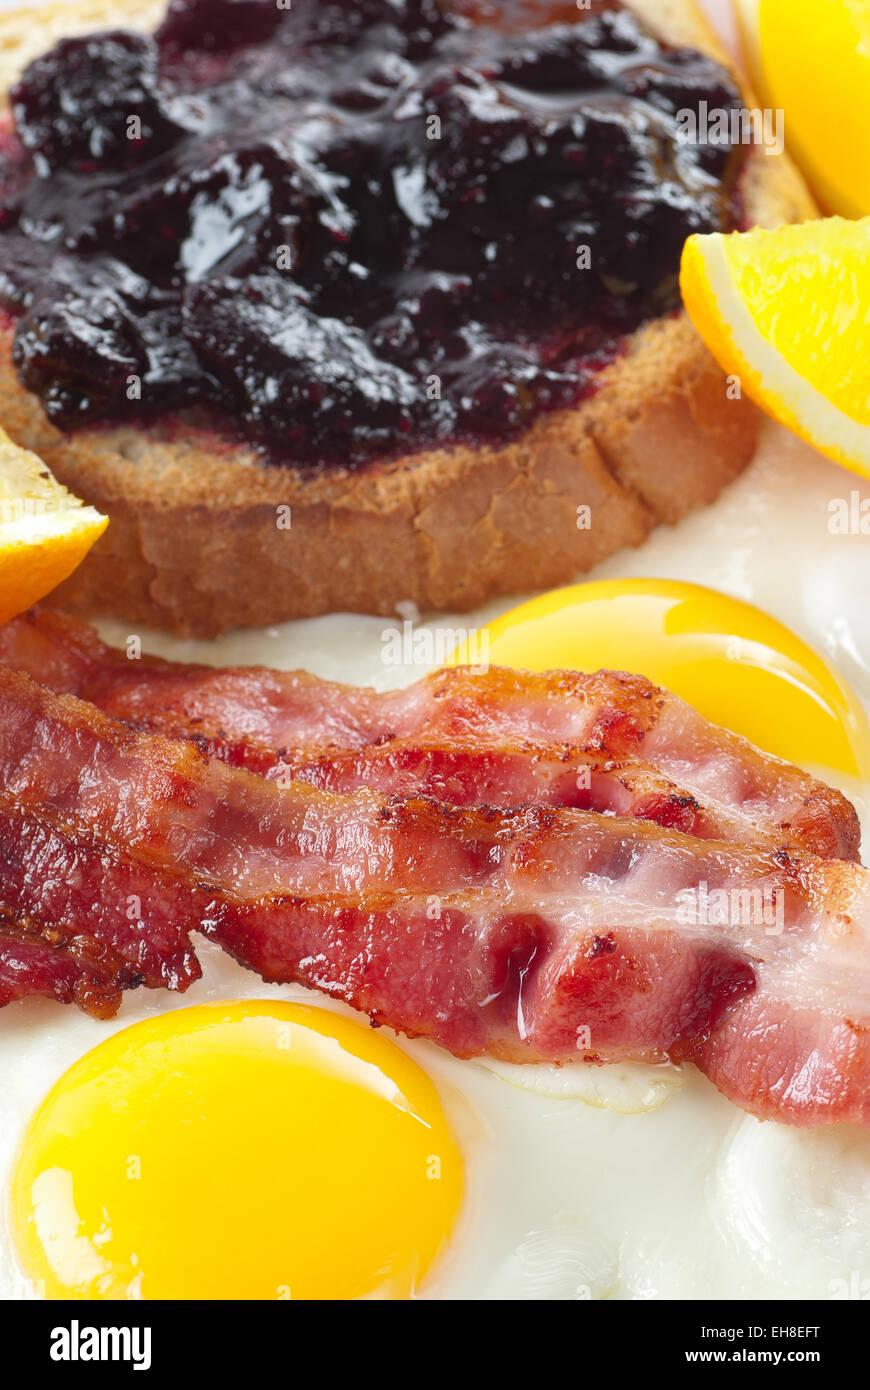 Bacon, fried eggs, orange and roasted bread with jam. - Stock Image